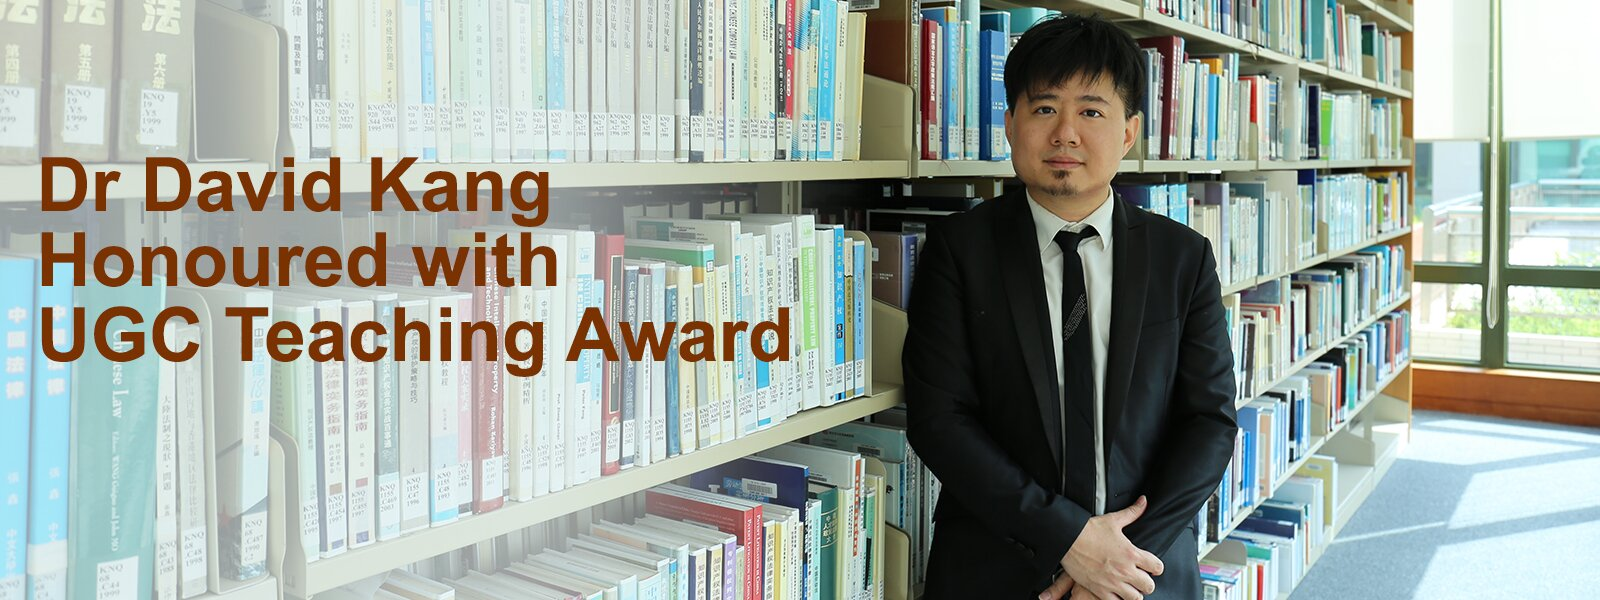 Dr David Kang Honoured with UGC Teaching Award